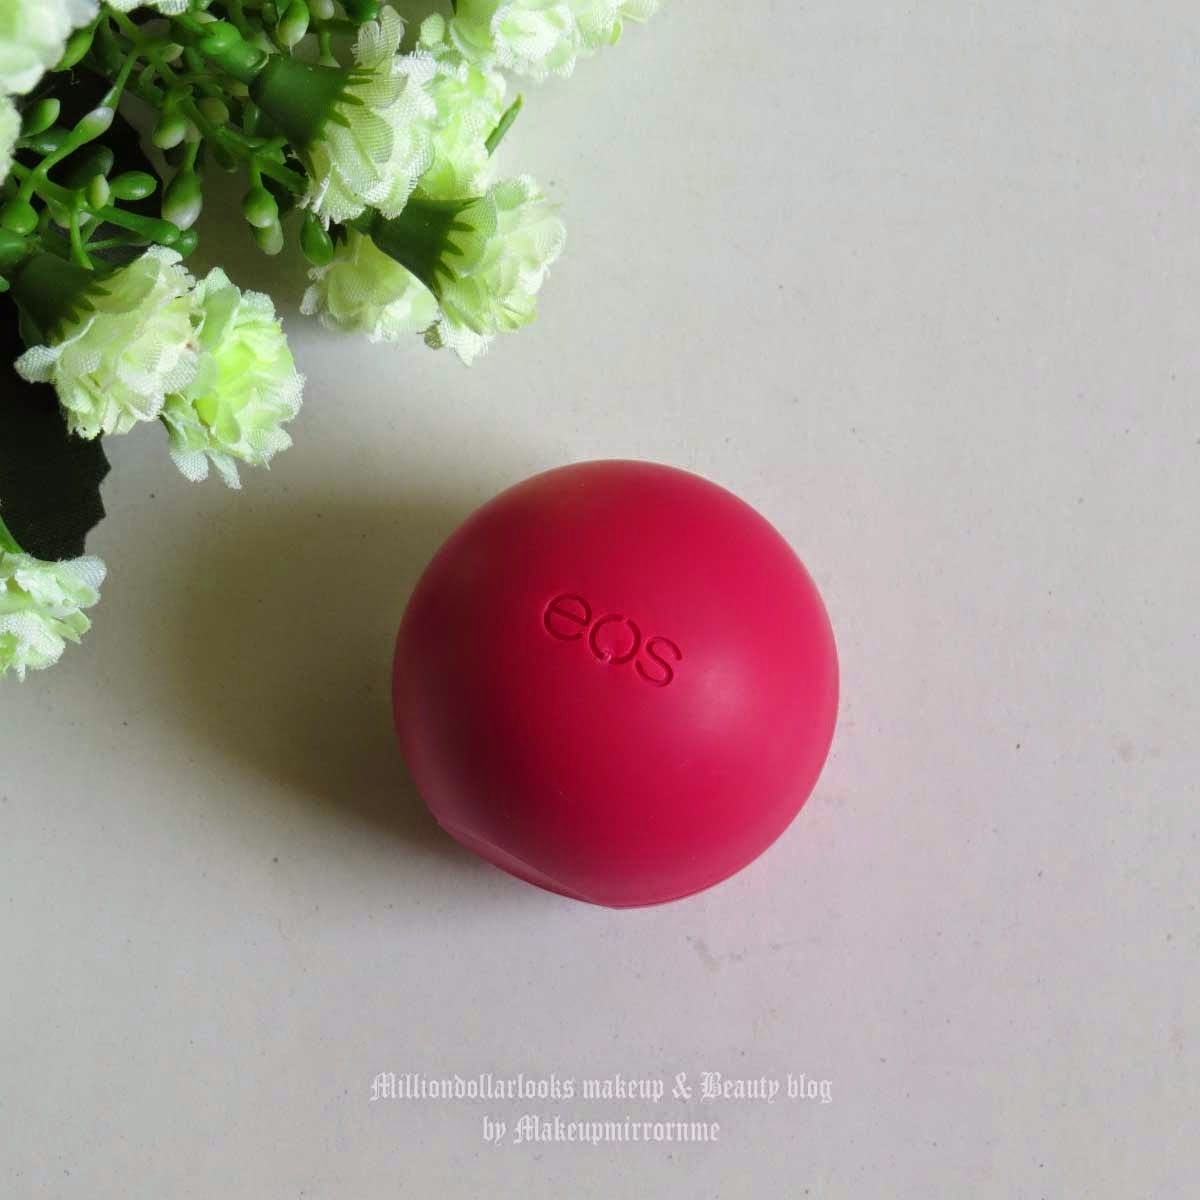 EOS Lip Balm Pomegranate Raspberry Review, Pictures & Price in India, EOS lip balm review India, Eos lip balm, Best lip balms available in India, Dry, chapped lips, Eos review, Lip balm review, Indian beauty blogger, indian beauty blog, indian makeup and beauty blog, Pink, Lips, Lip care, best lip products for dry lips, how to treat dry lips, where to buy EOS lip balms in India, eos lip balm price in India